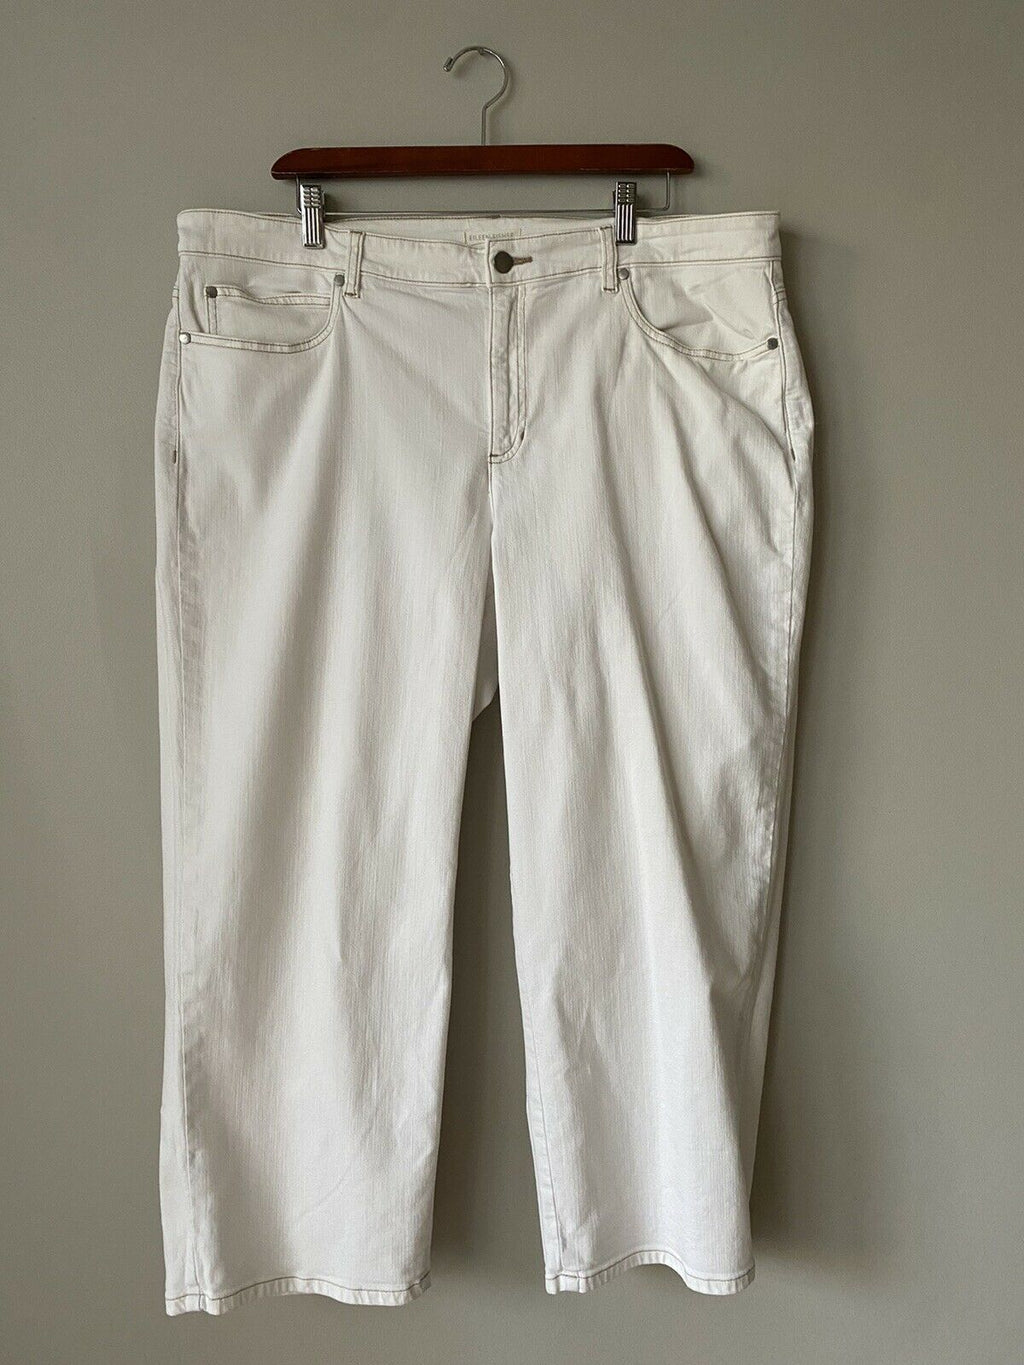 Eileen Fisher Size 16 Ivory Jeans Straight Leg Cropped Ankle Pants Zipper Denim